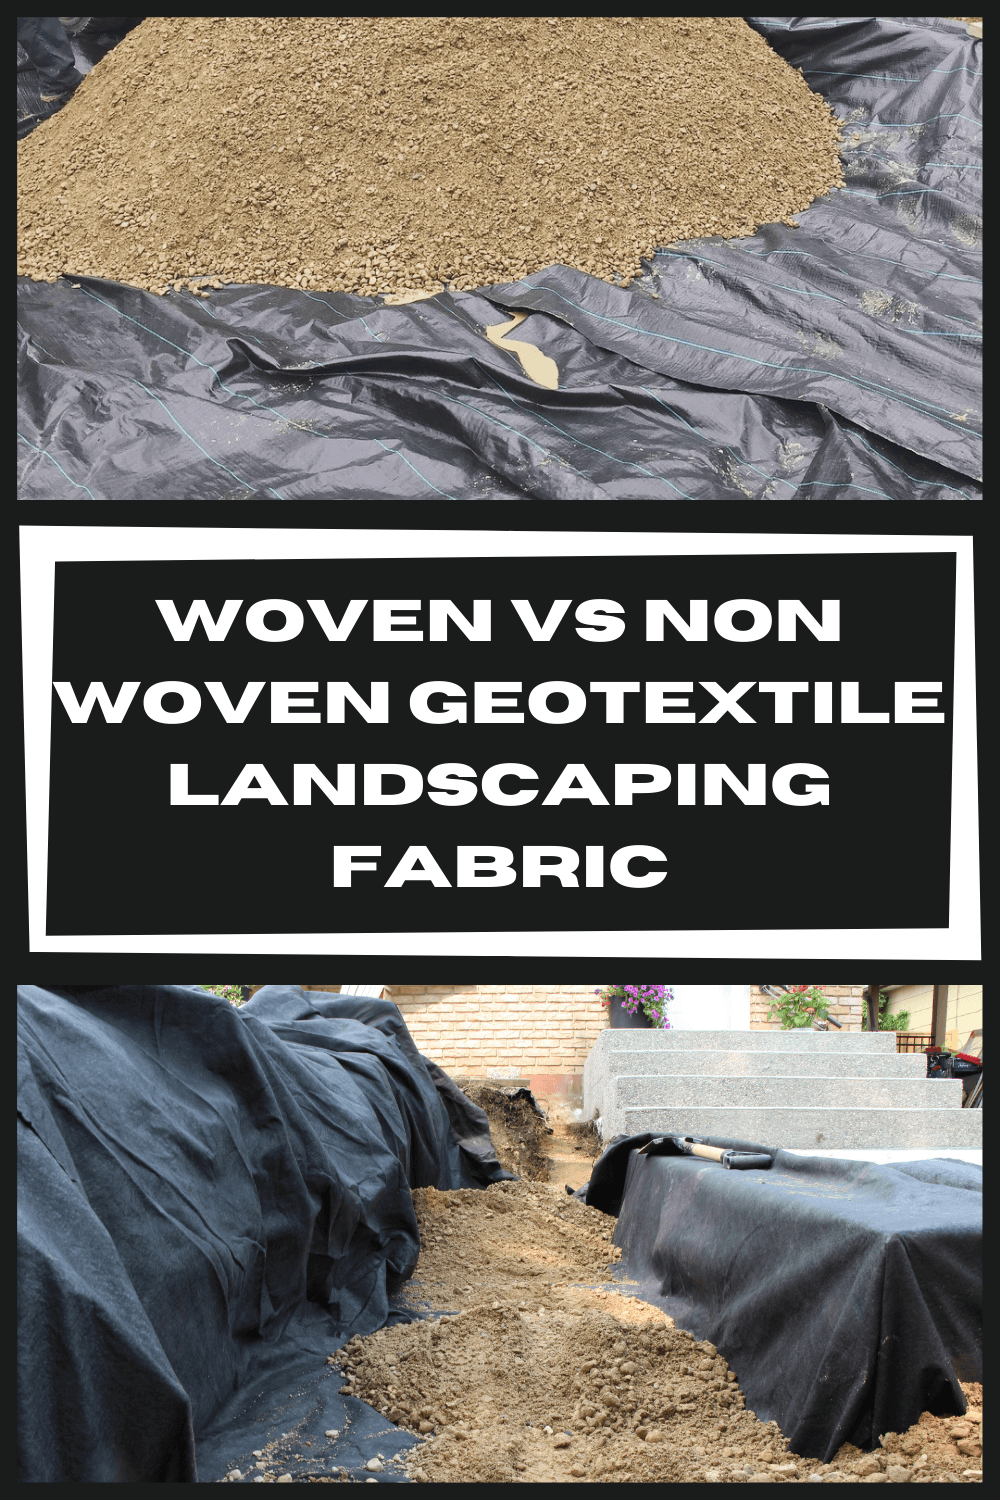 woven-vs-non-woven-geotextile-landscaping-fabric